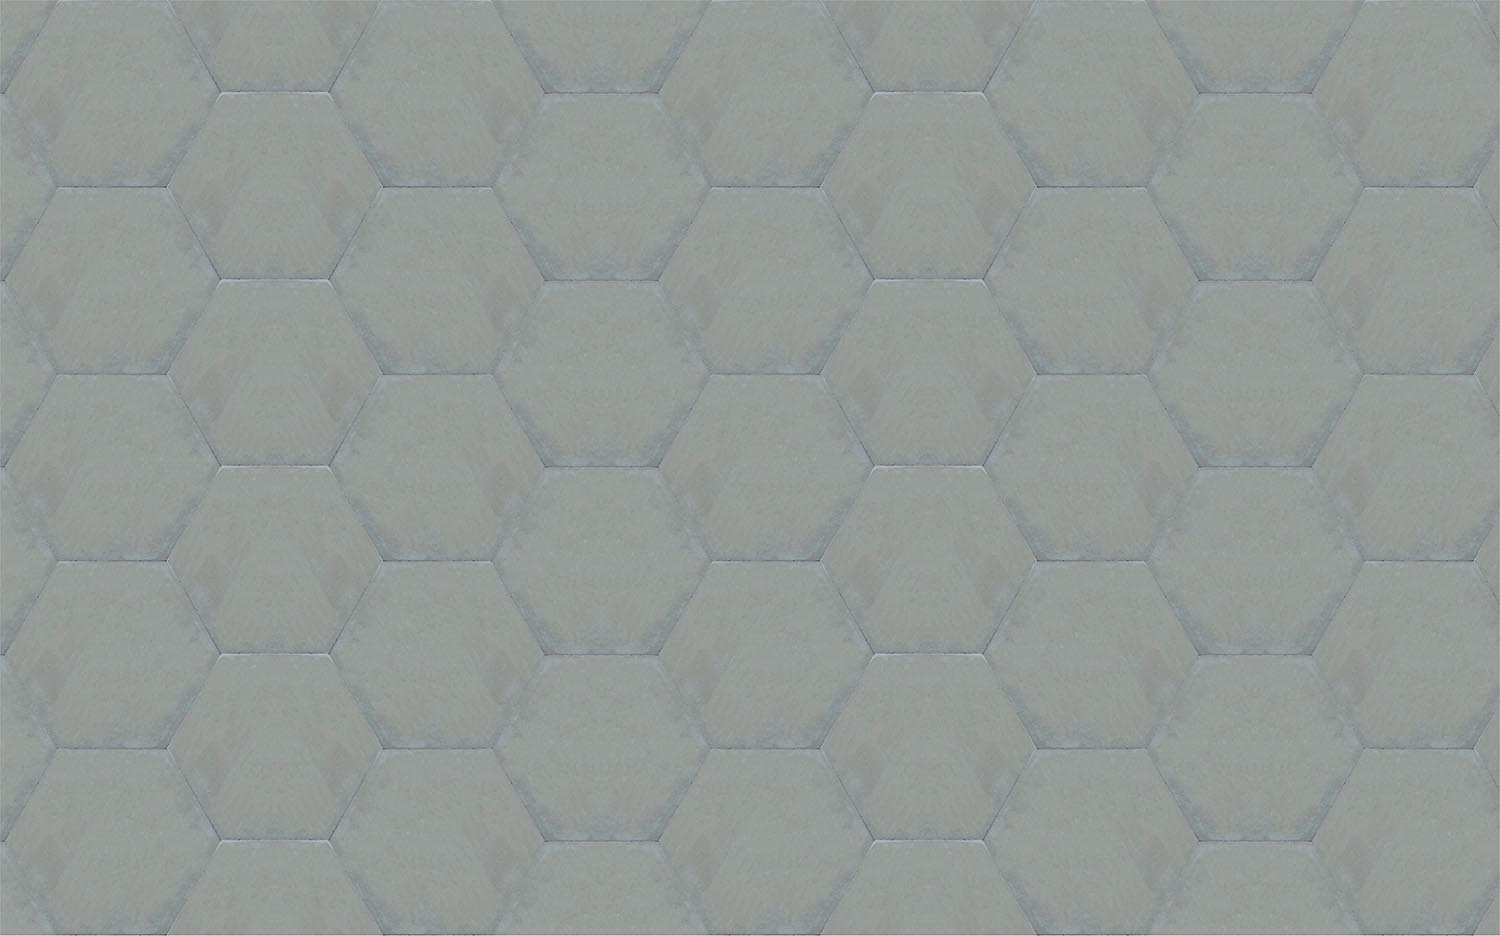 gris-liso-hexagonal